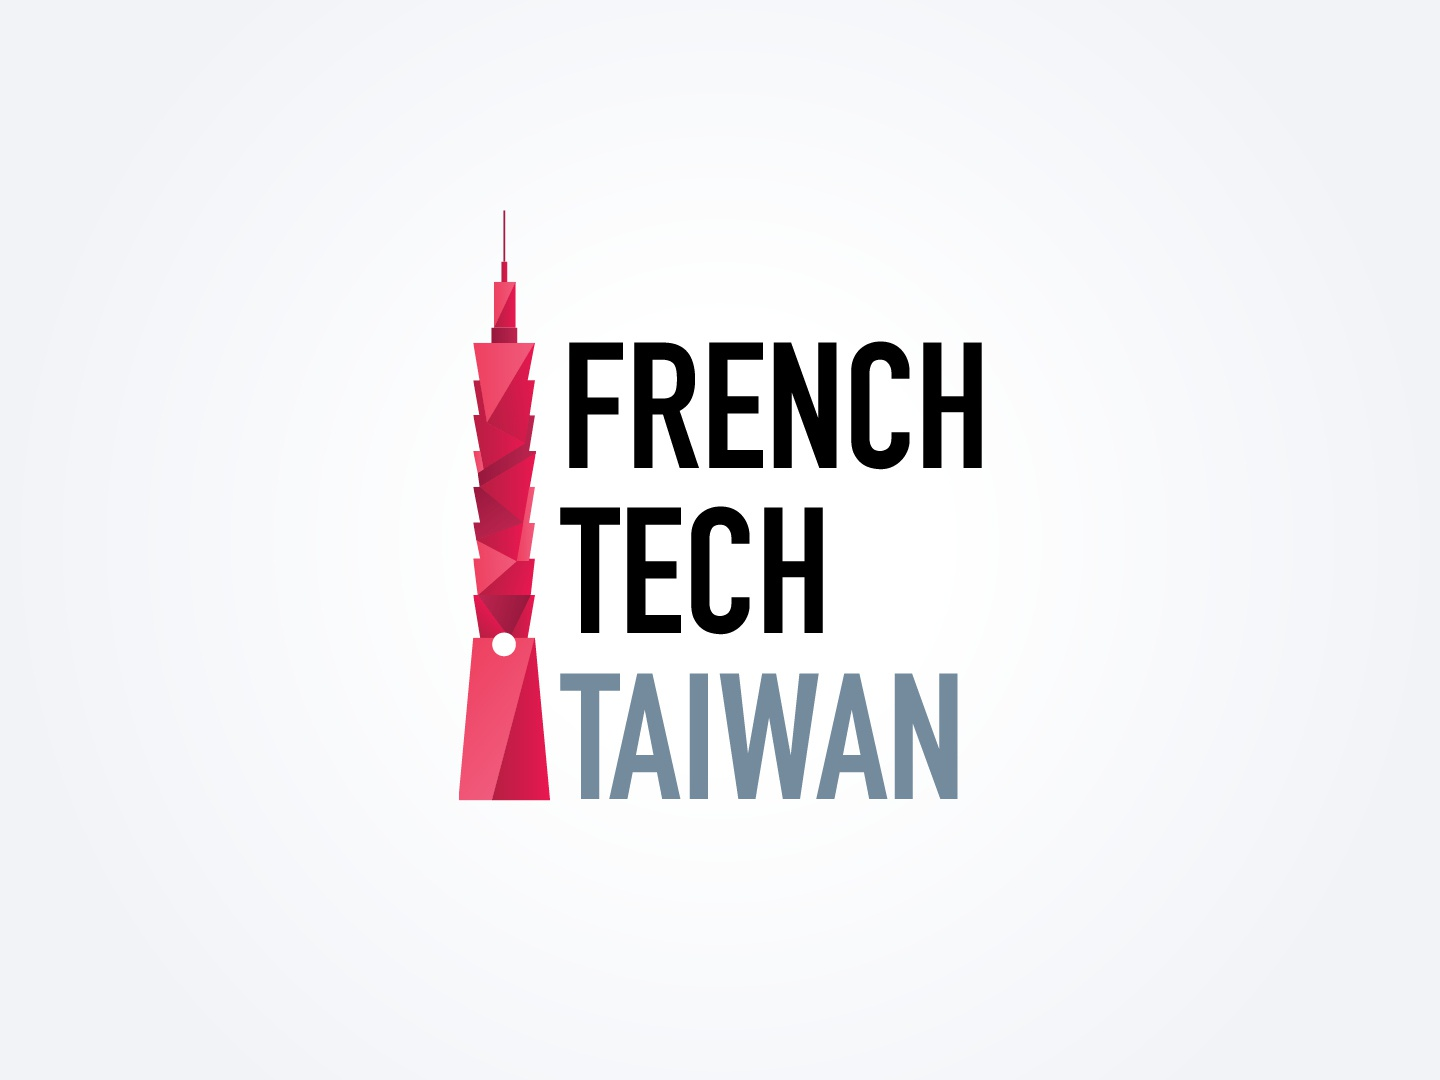 French Tech Taiwan skyscraper french tech taiwan 101 tower taiwan french tech french logodesign logo